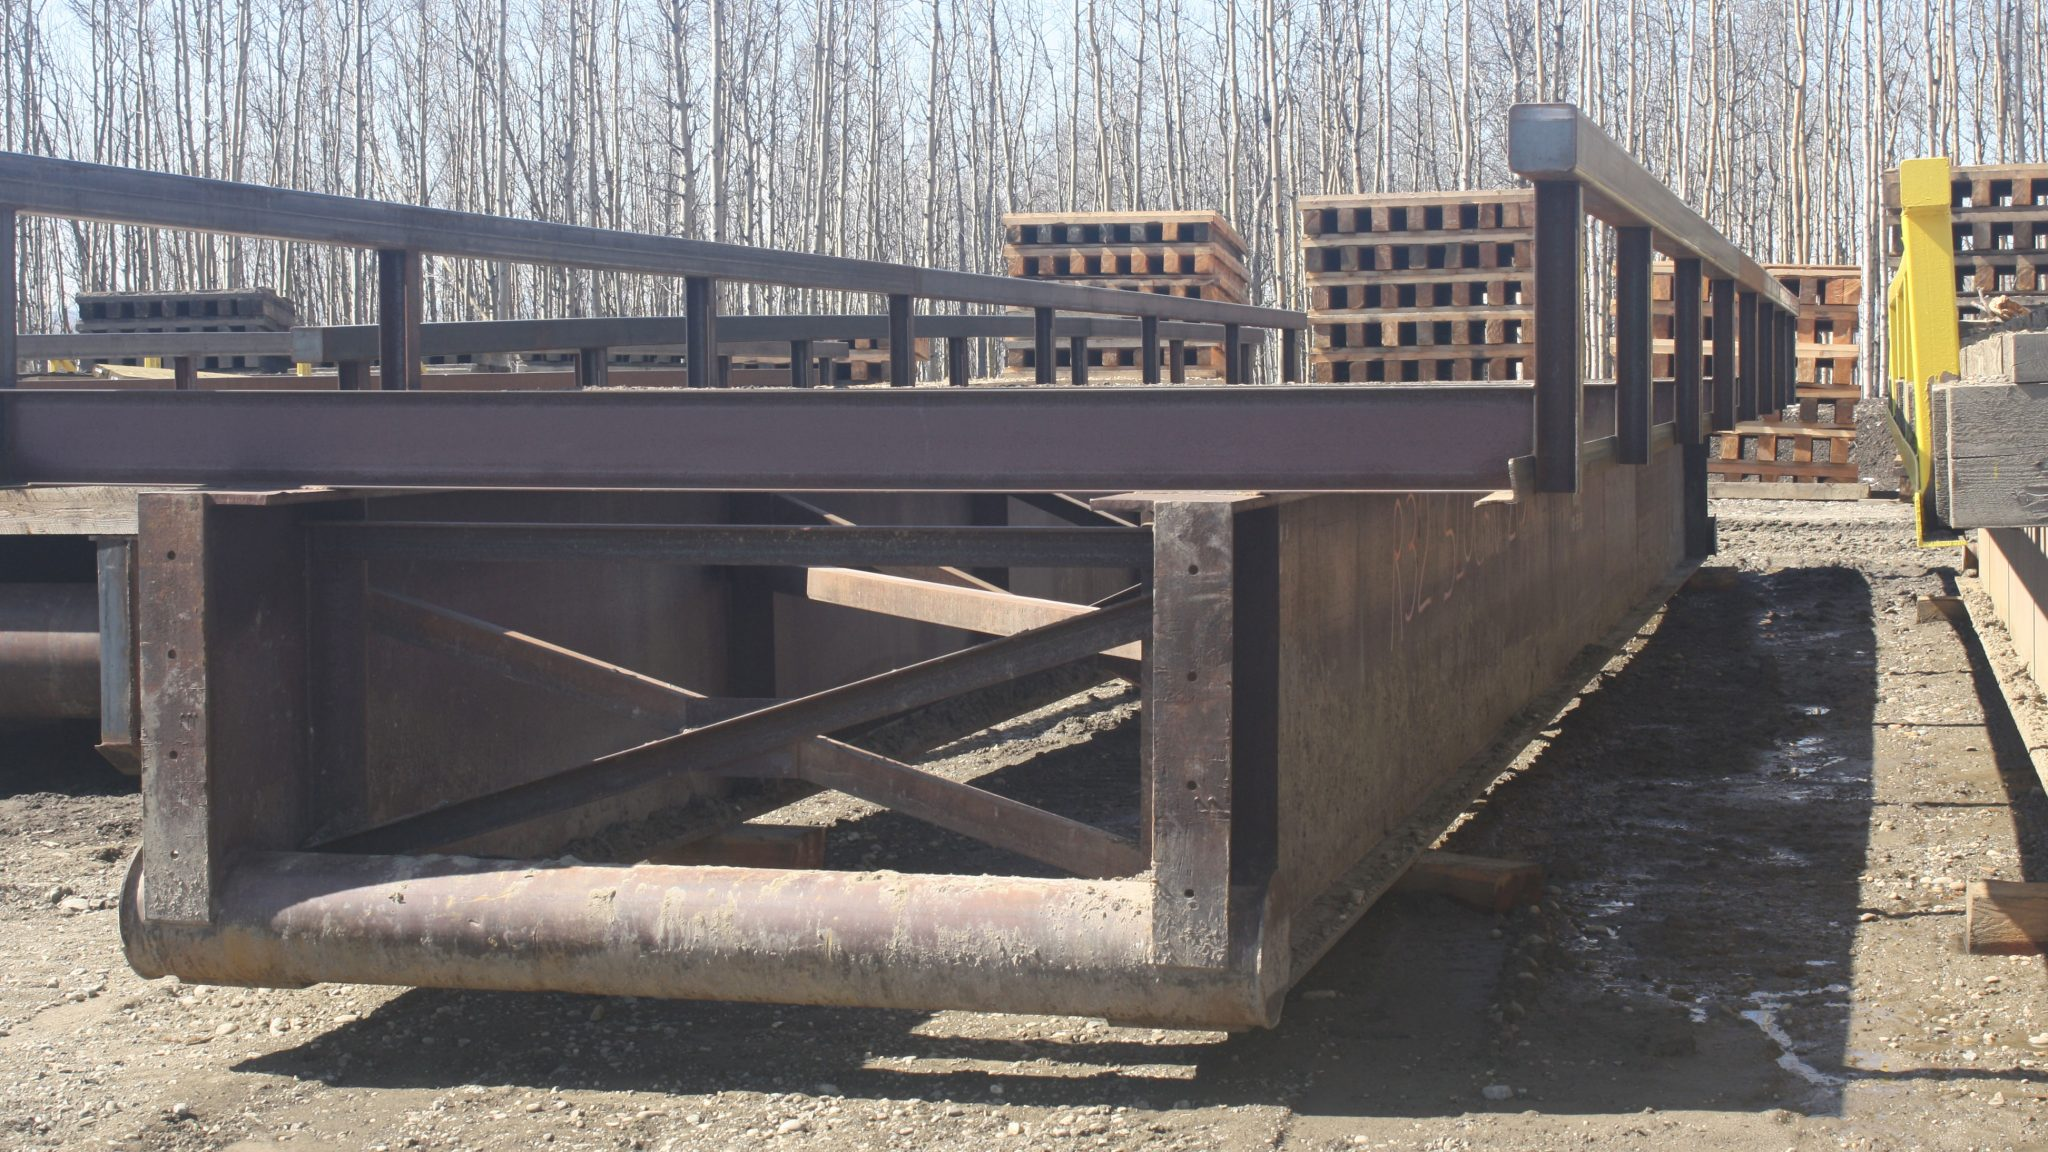 TEMPORARY PORTABLE Bridge | Bridge Construction & Mat Rental - Great Northern Bridgeworks